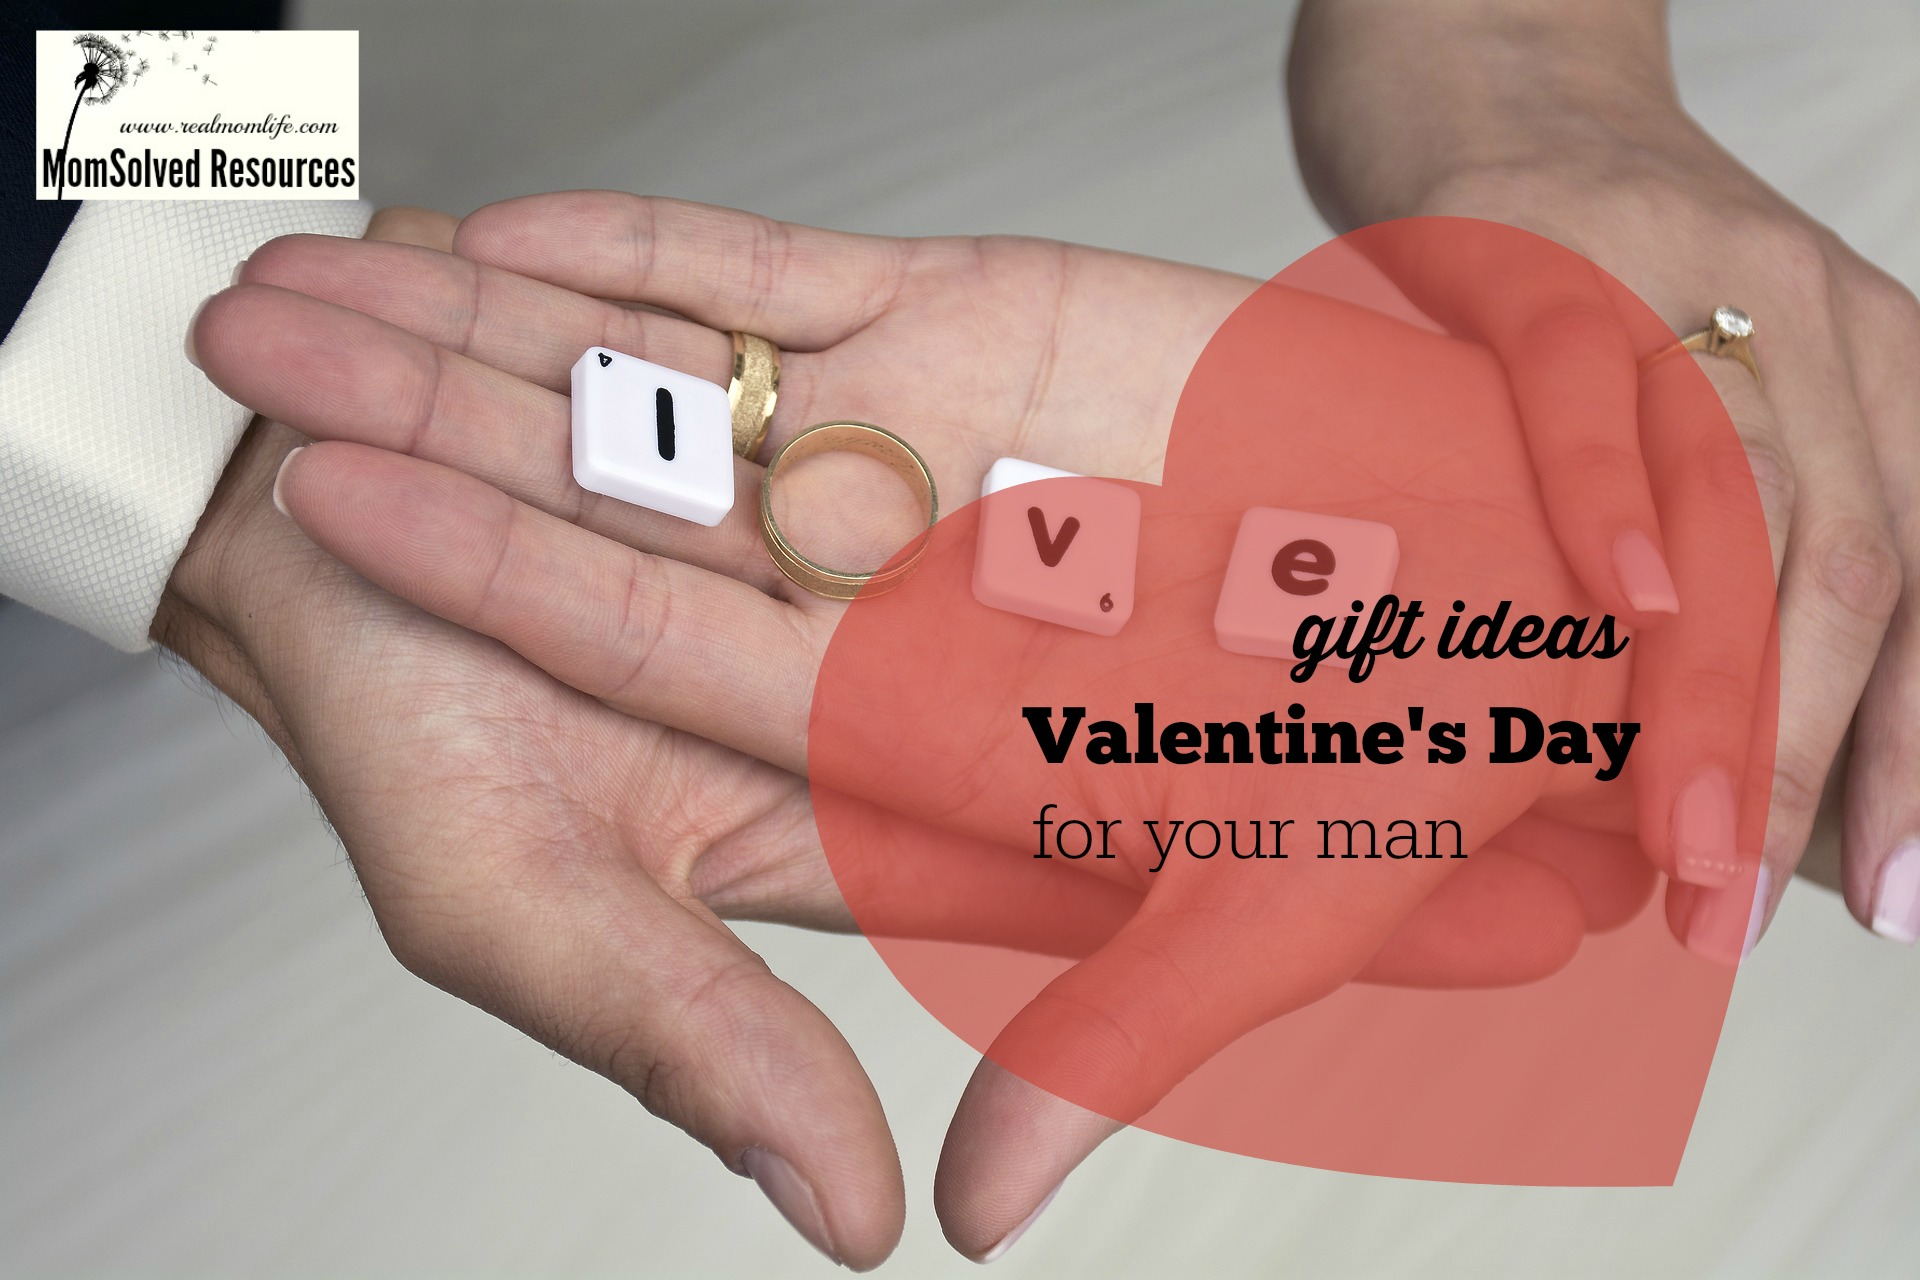 Valentine's Day Gift Ideas for your Man